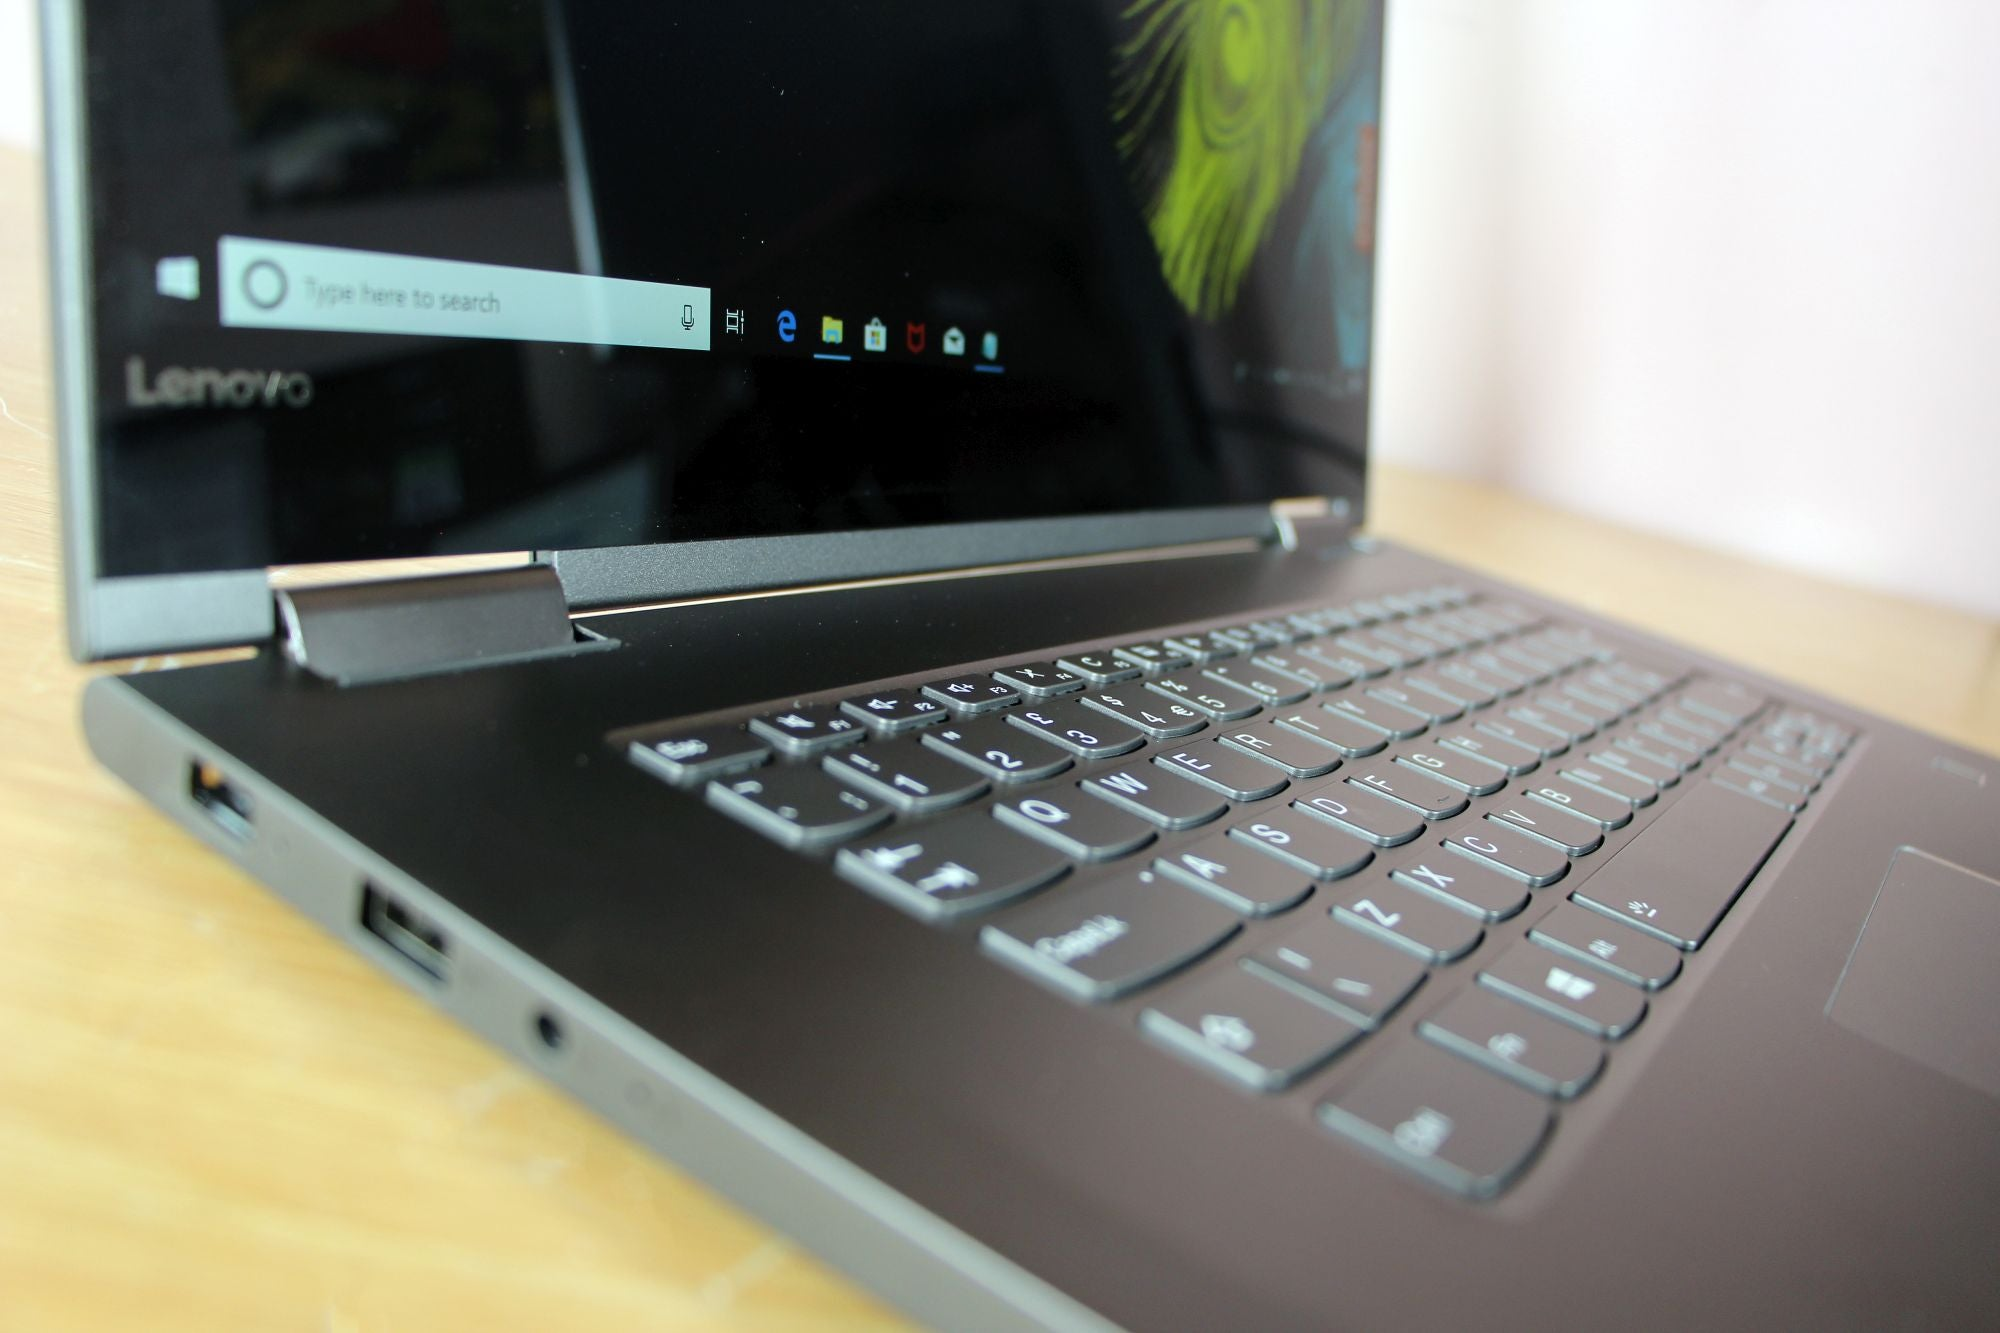 Lenovo Yoga 730 | Trusted Reviews